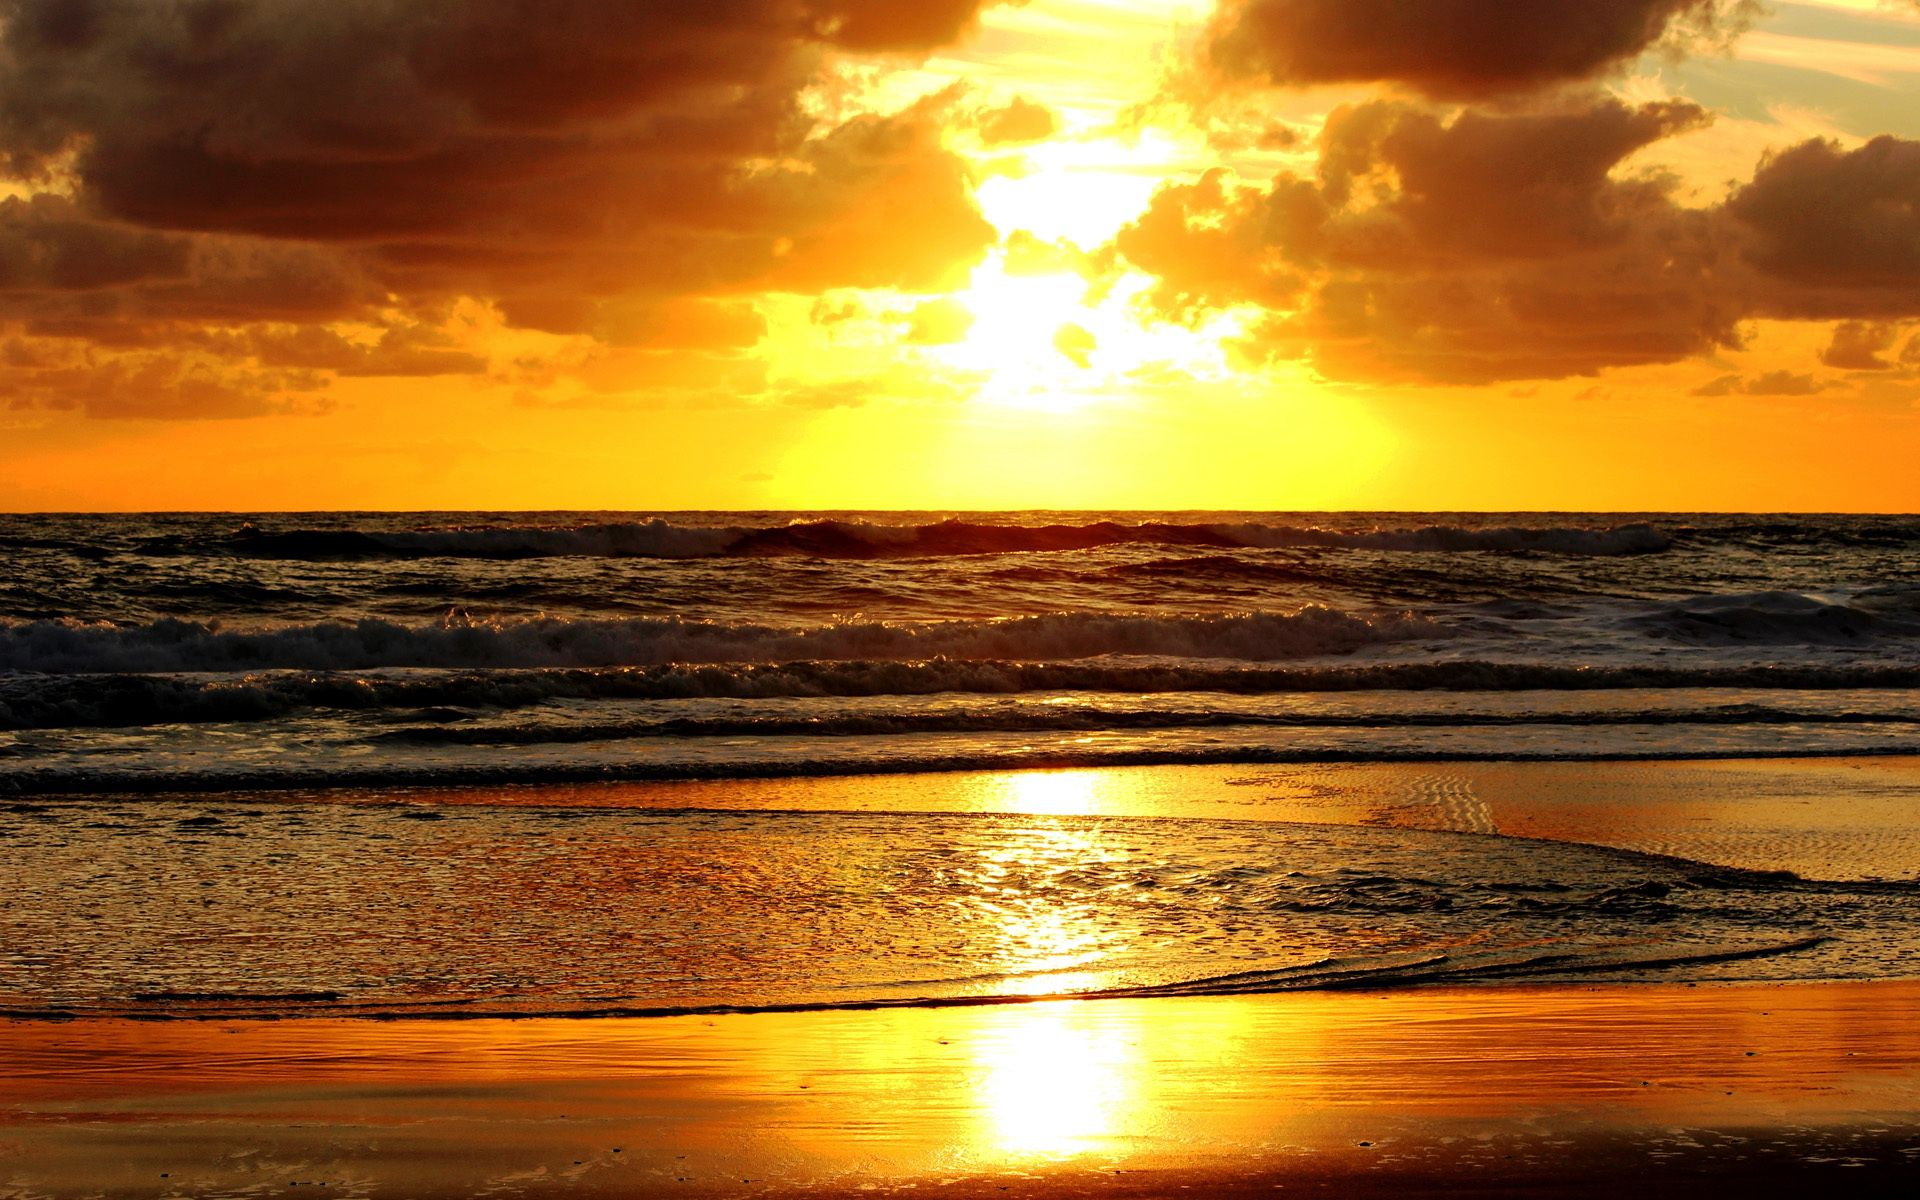 sunset at beach Interested in a career with sunset beach please send us your cv and if a position becomes available we will contact you.